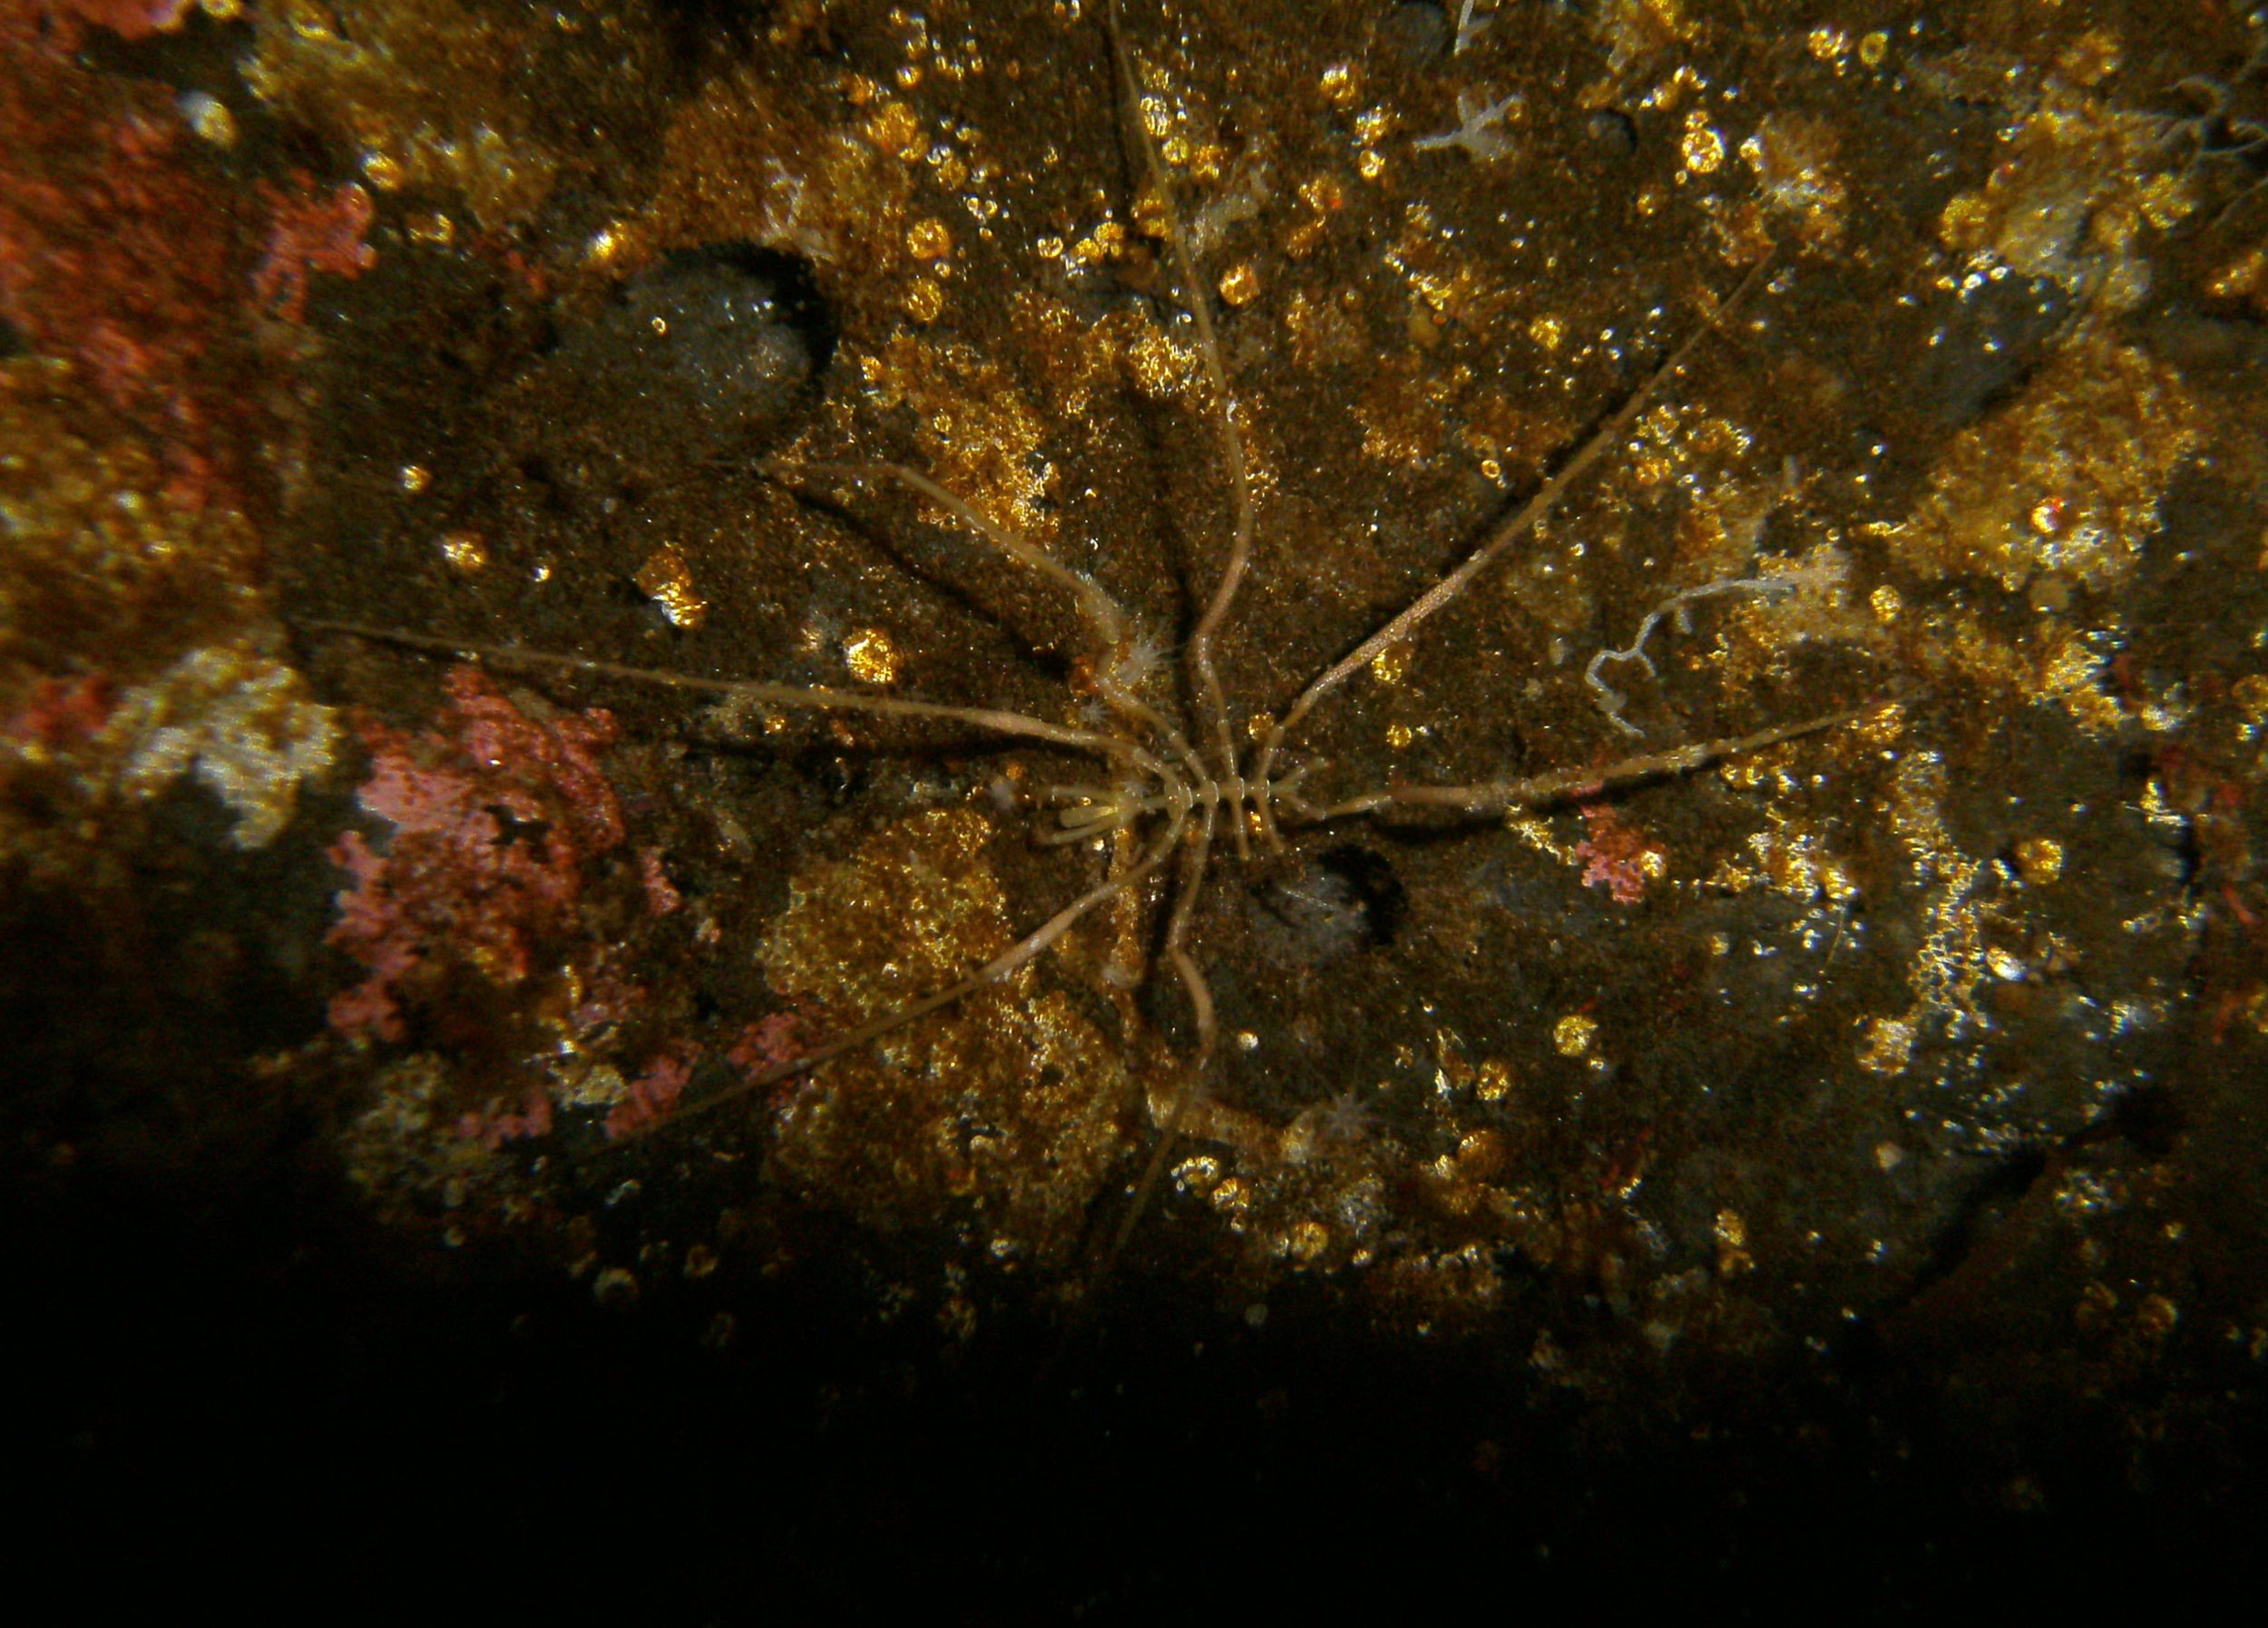 Sea spider  Pentanymphon antarcticum.  This species has 10 legs (although this individual has lost a few)!